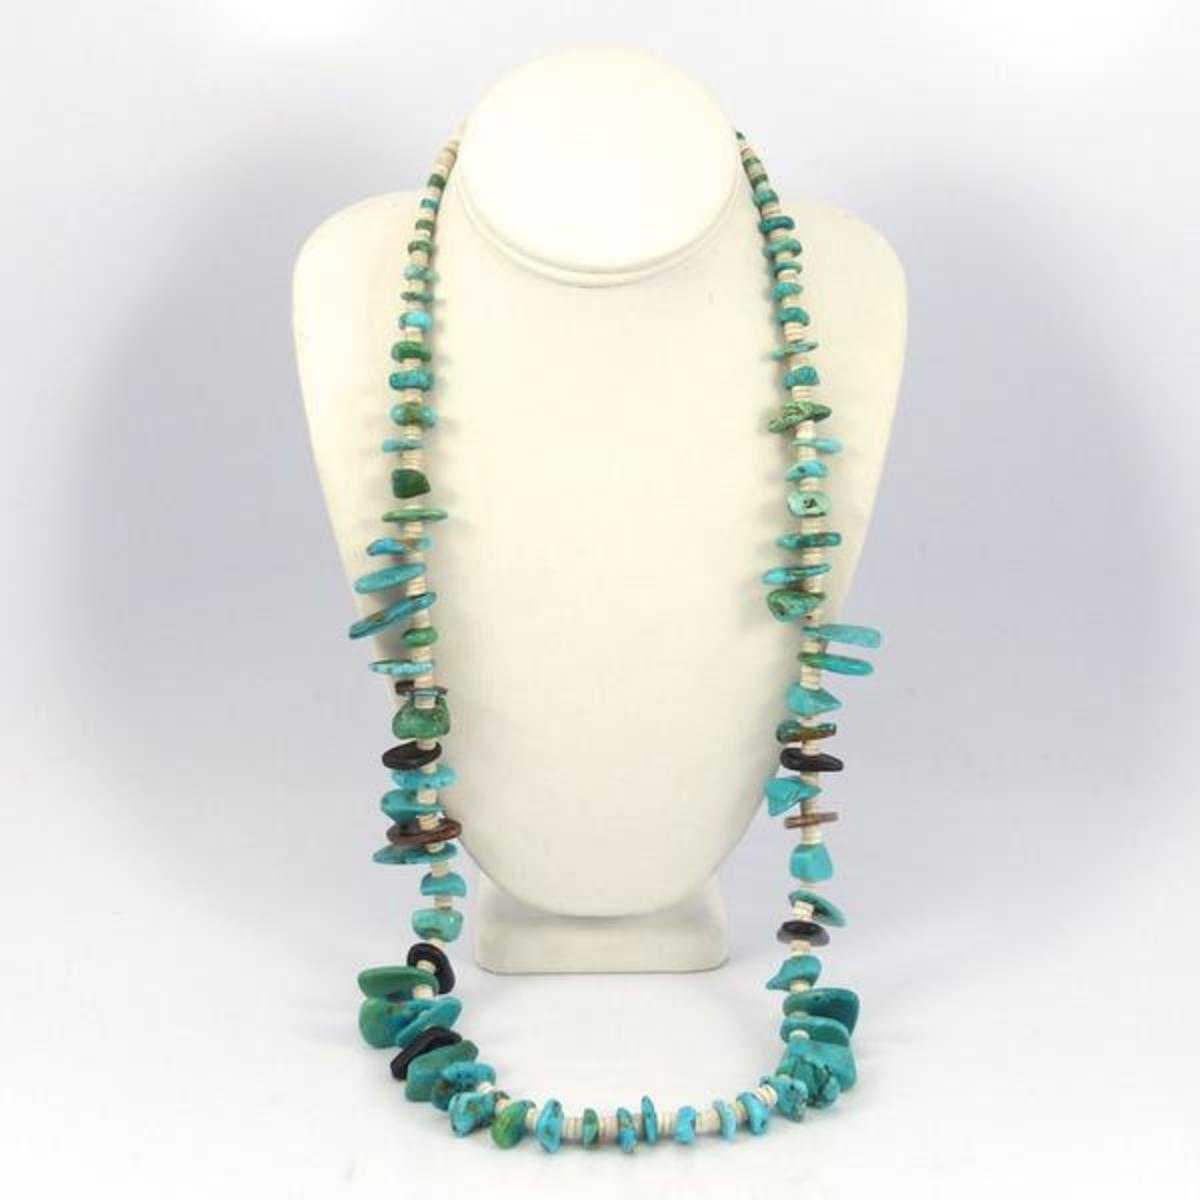 1930's vintage heishi turquoise necklace